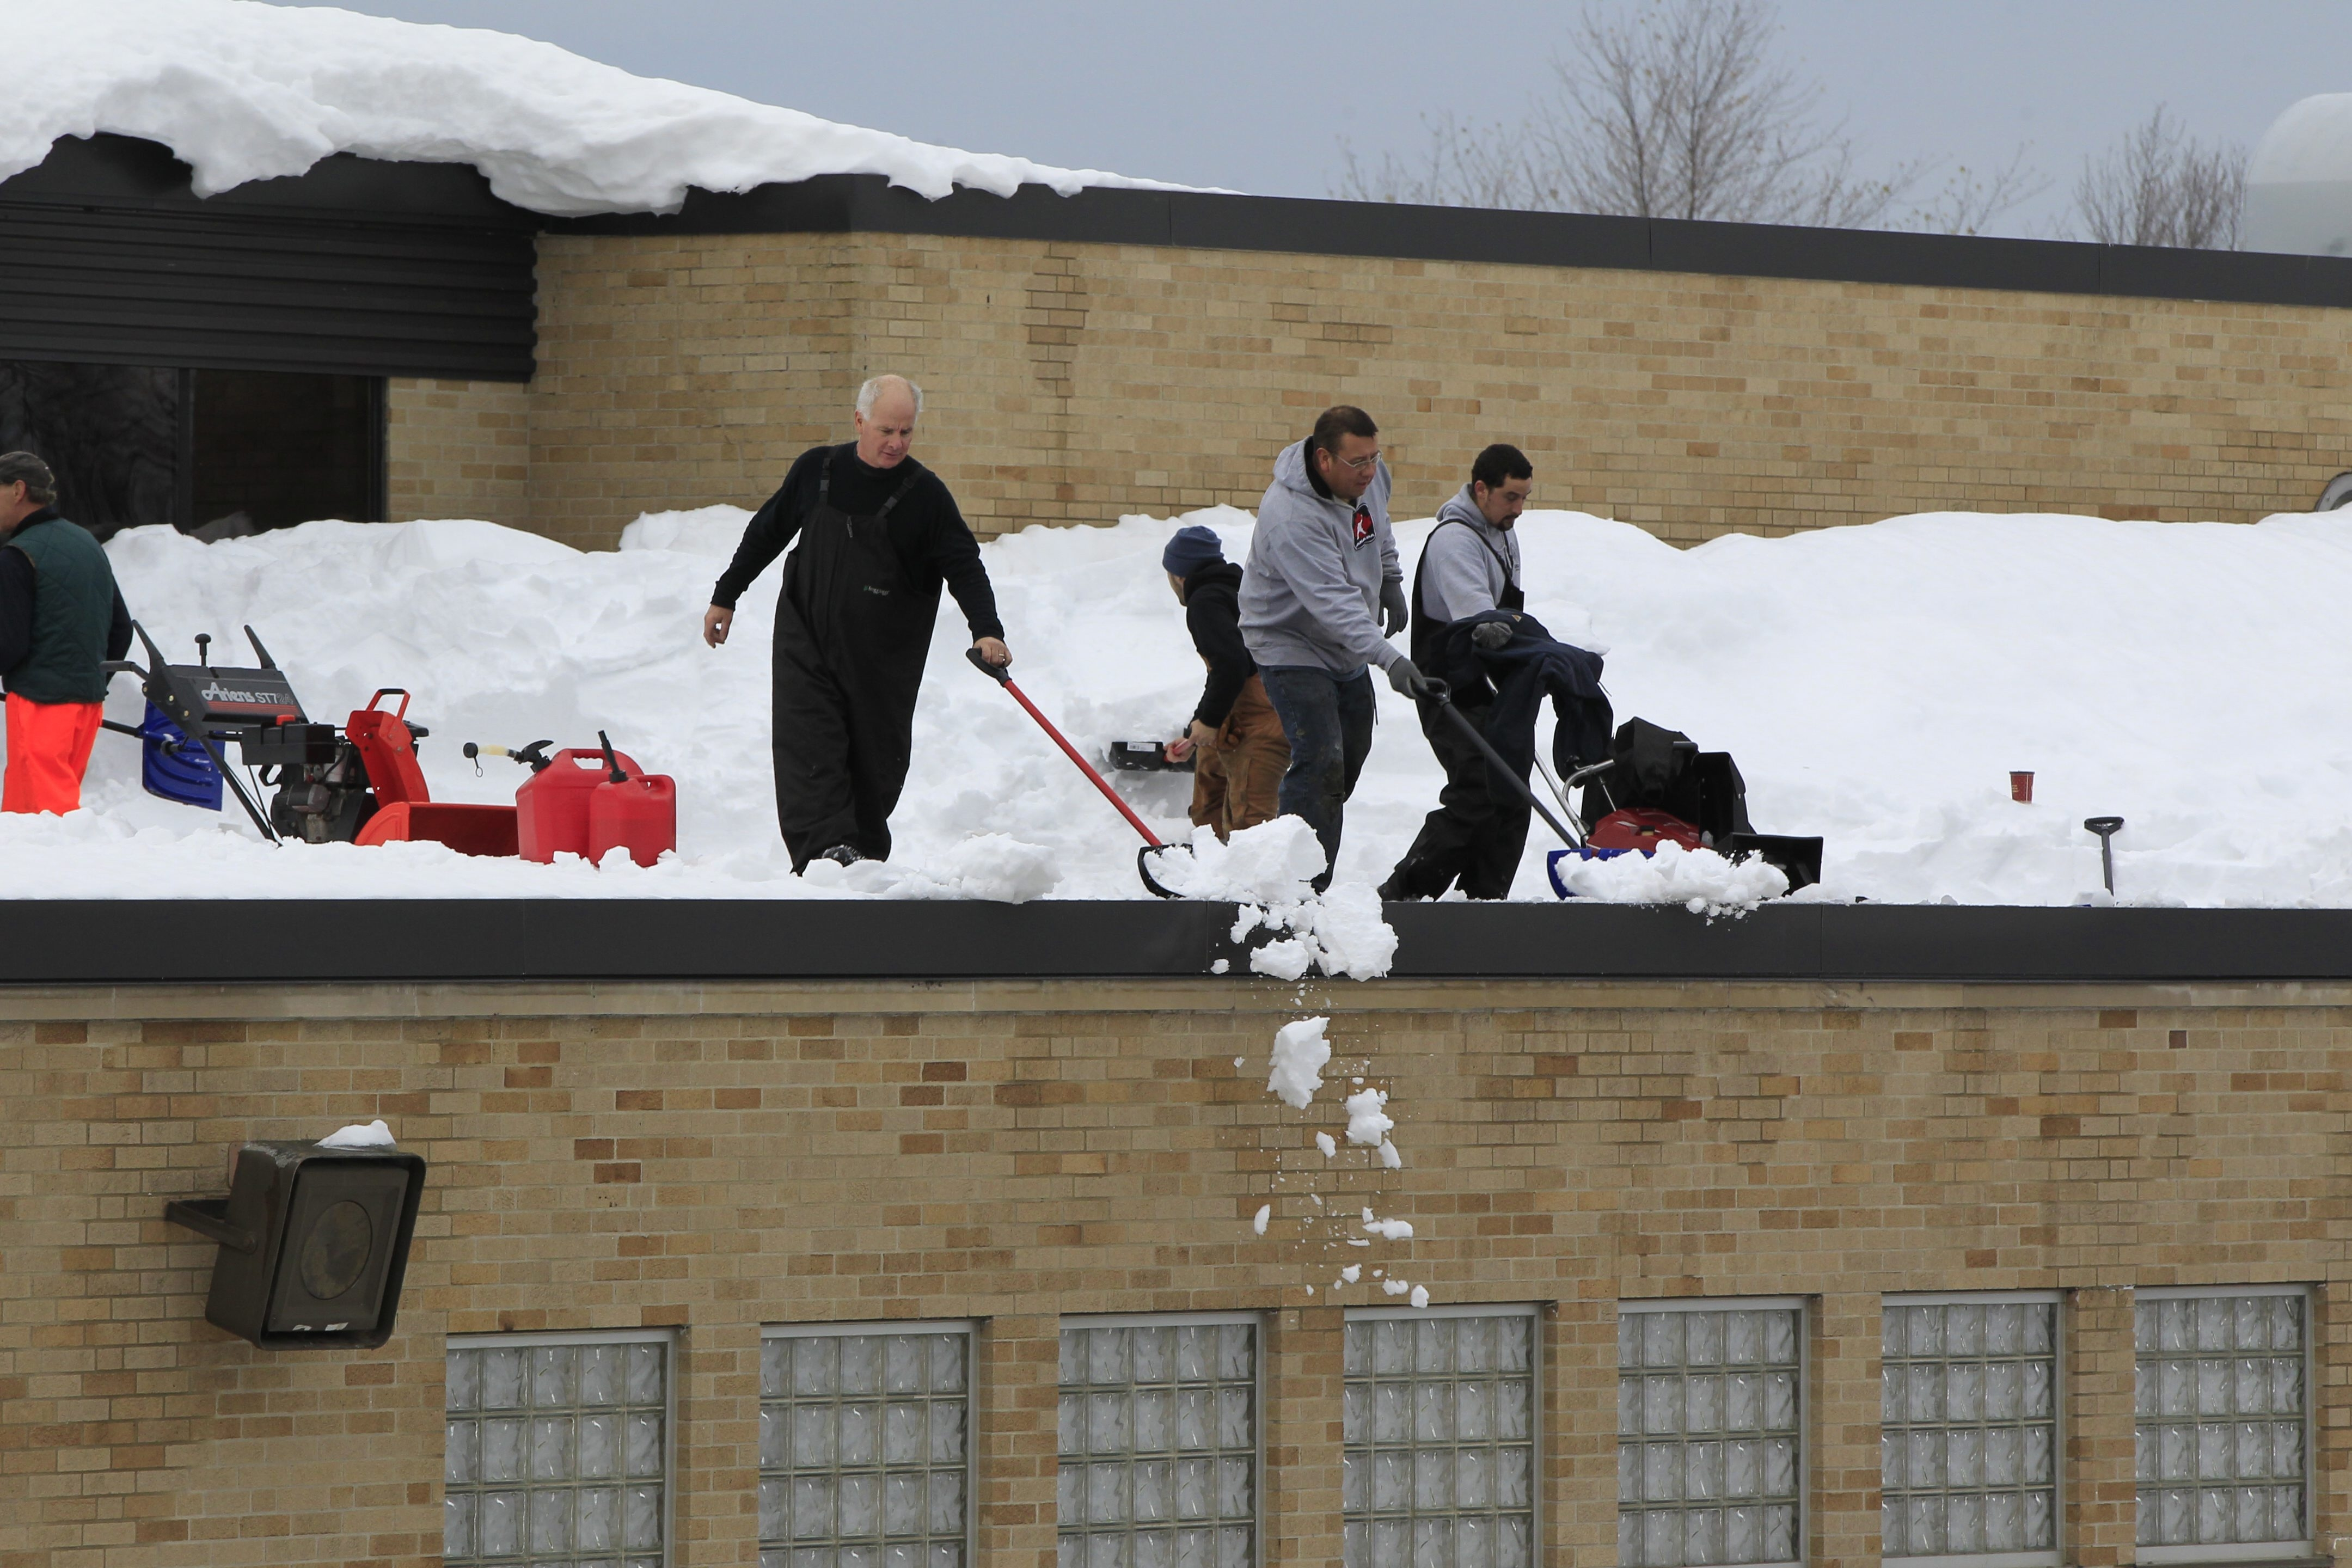 Workers use shovels and snowblowers to clear the roof of Hamburg High School on Sunday. The district is one of several in the area that will not reopen until Dec. 1, after the Thanksgiving holiday. Districts are also rearranging their calendars to make up for lost time.